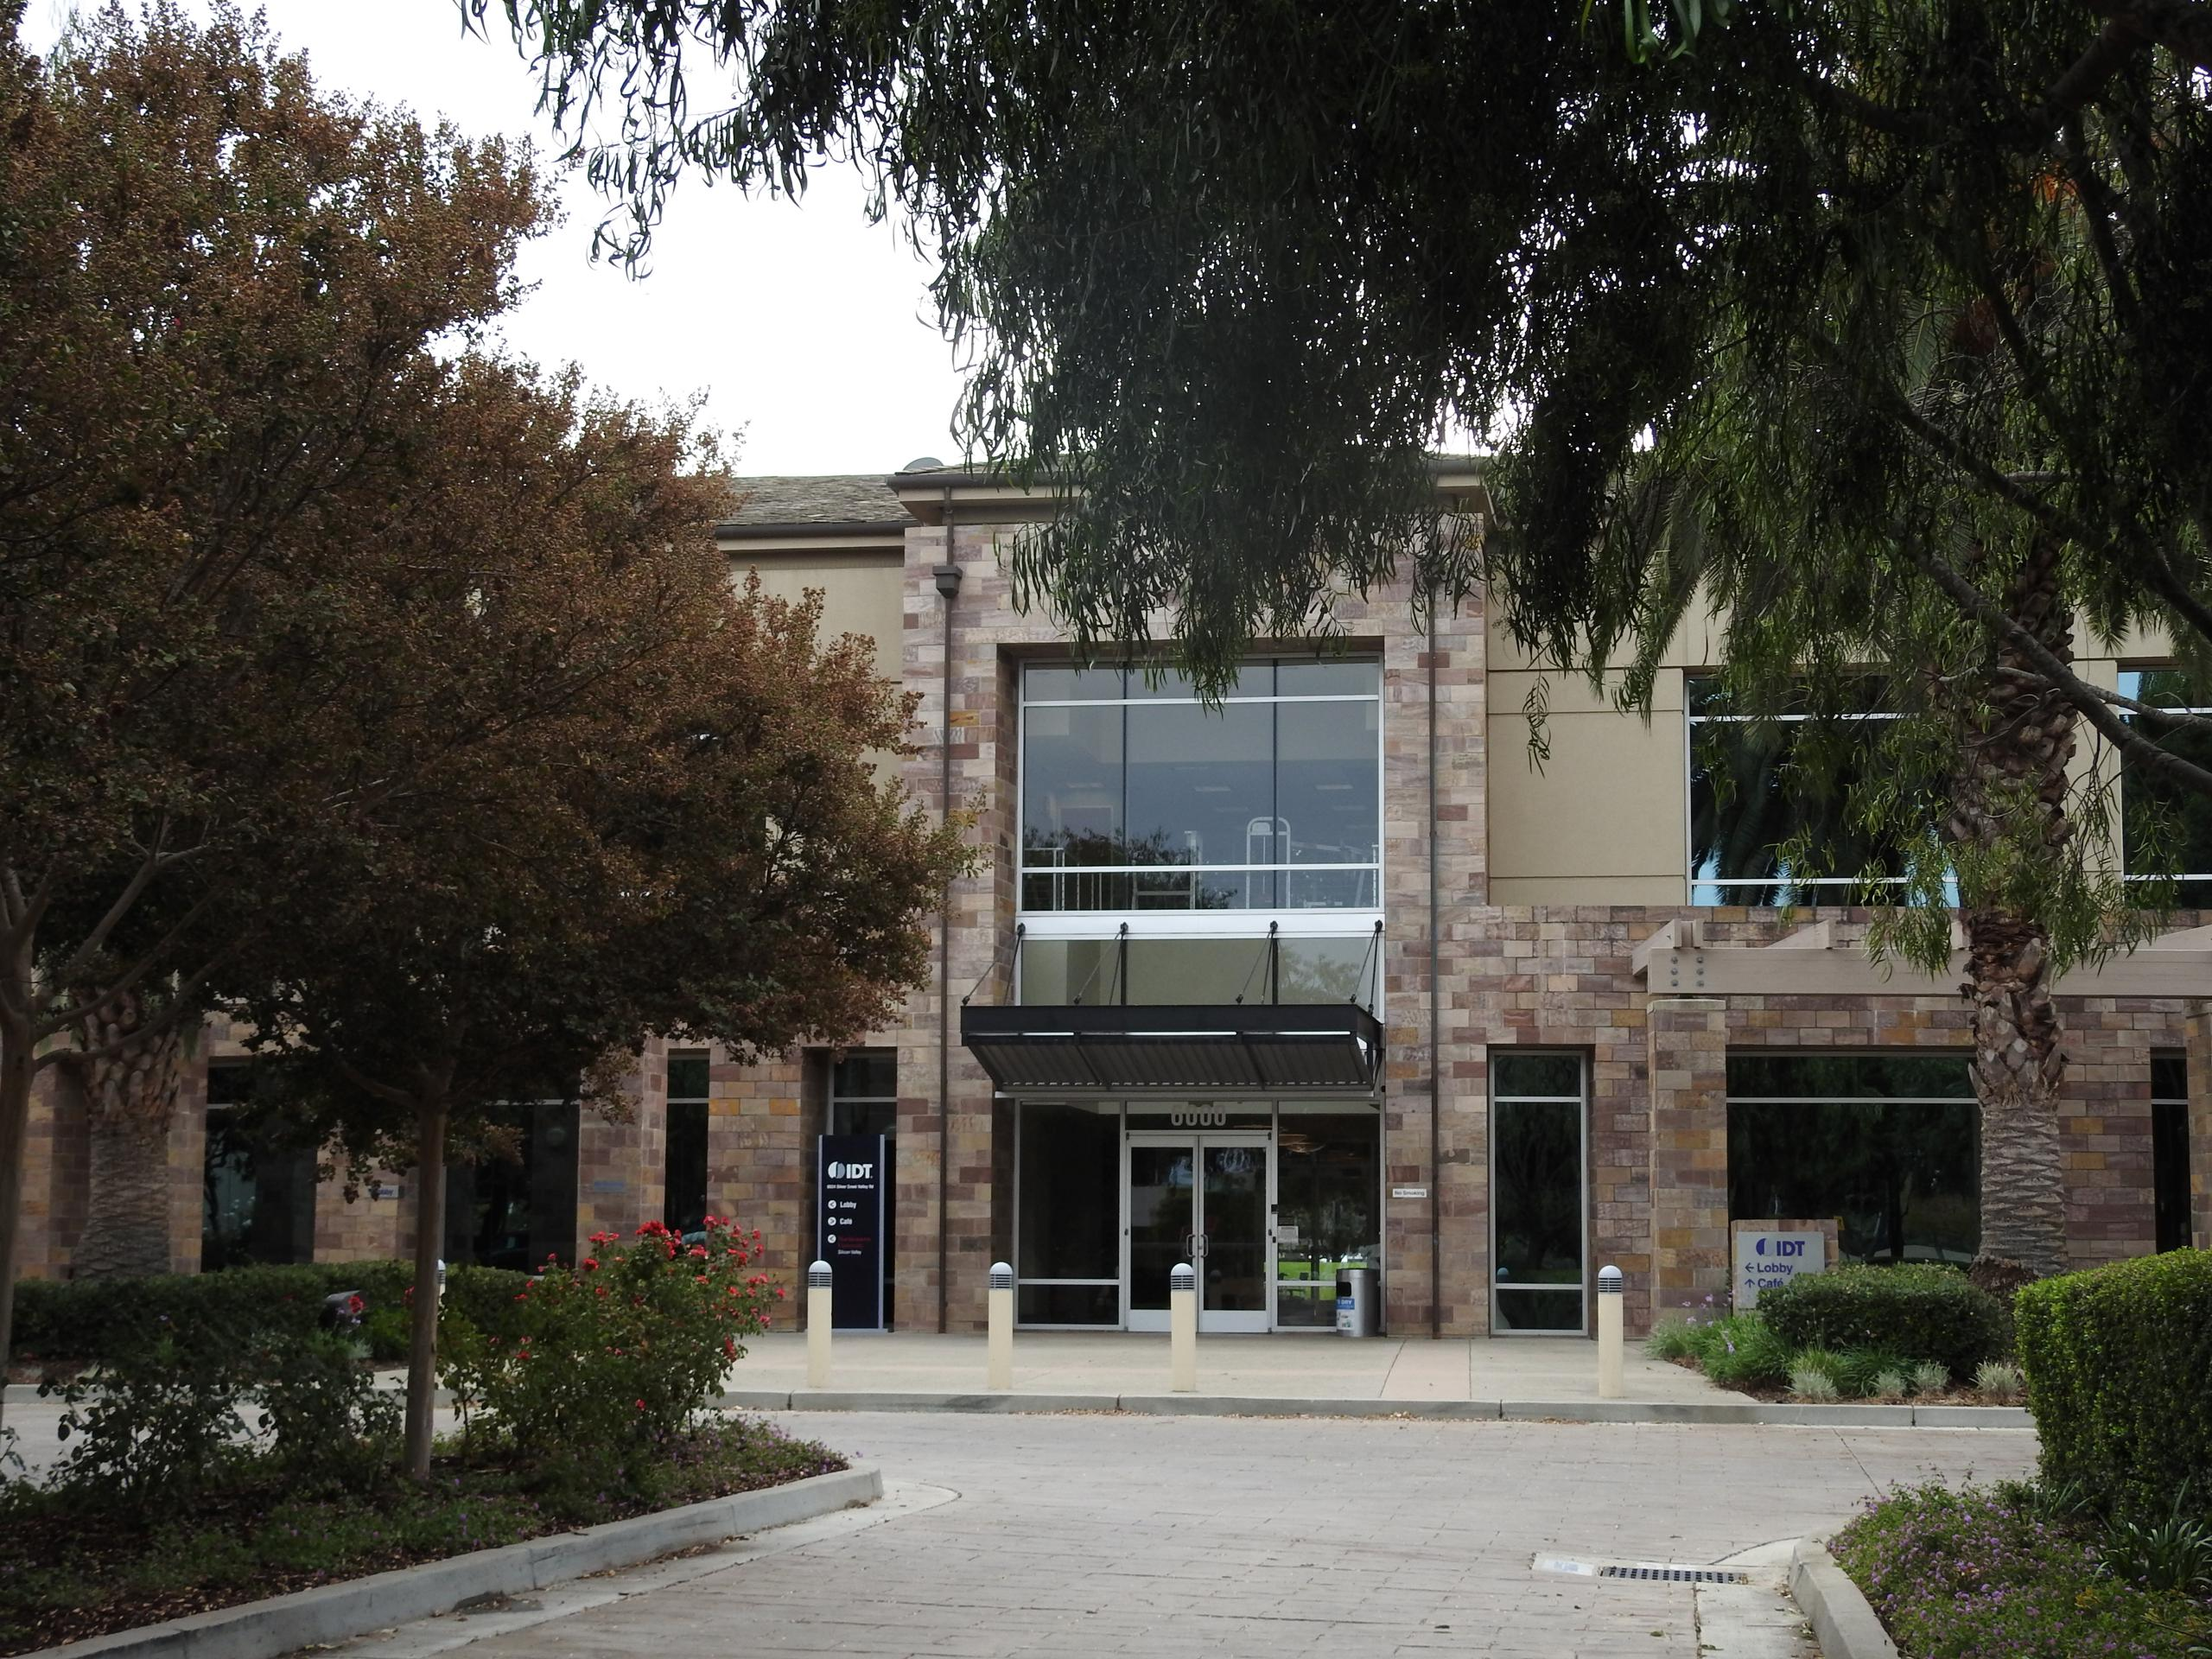 Integrated Device Technology's corporate headquarters in San Jose, California.